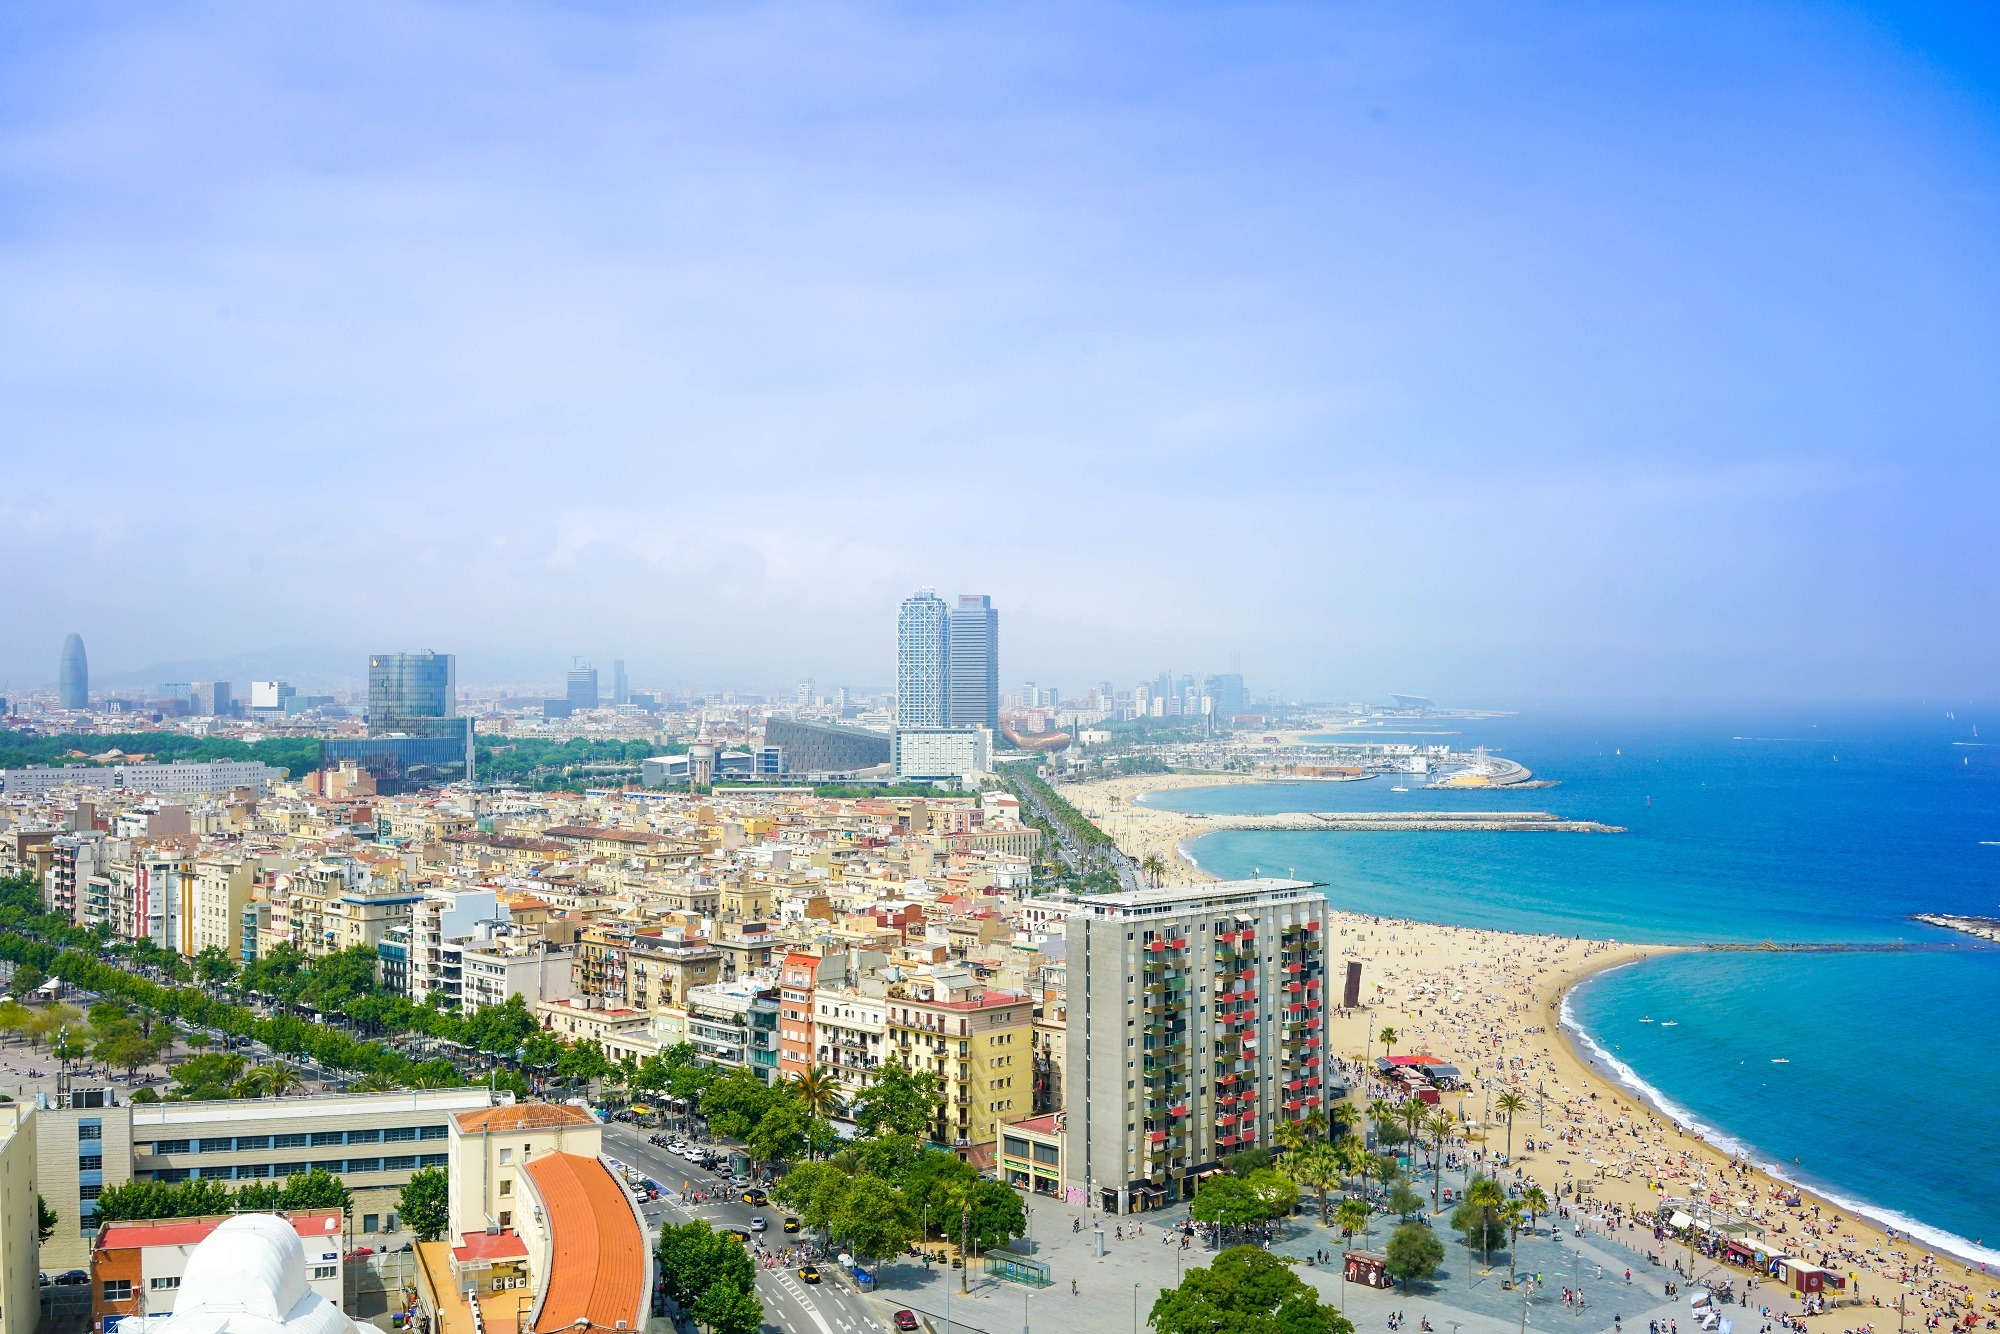 Postcard from Mobile World Congress 2018 in Barcelona | Concise Software